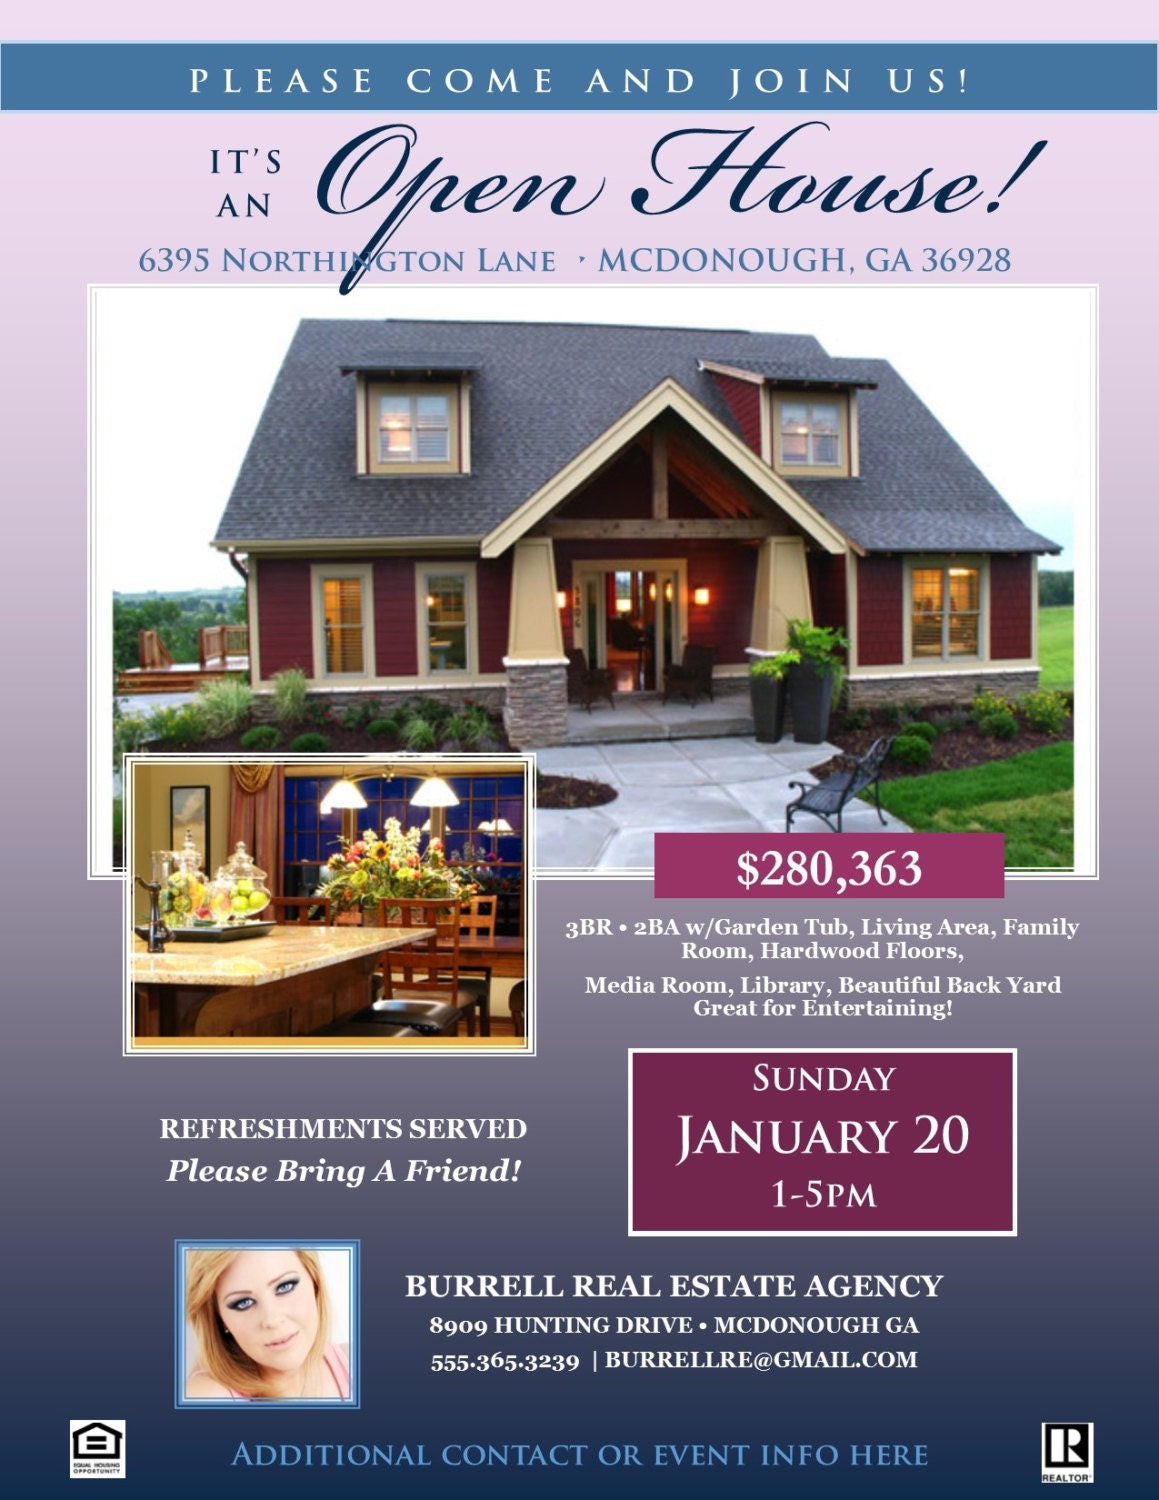 Broker Open House Flyer Templates - Just listed flyer template